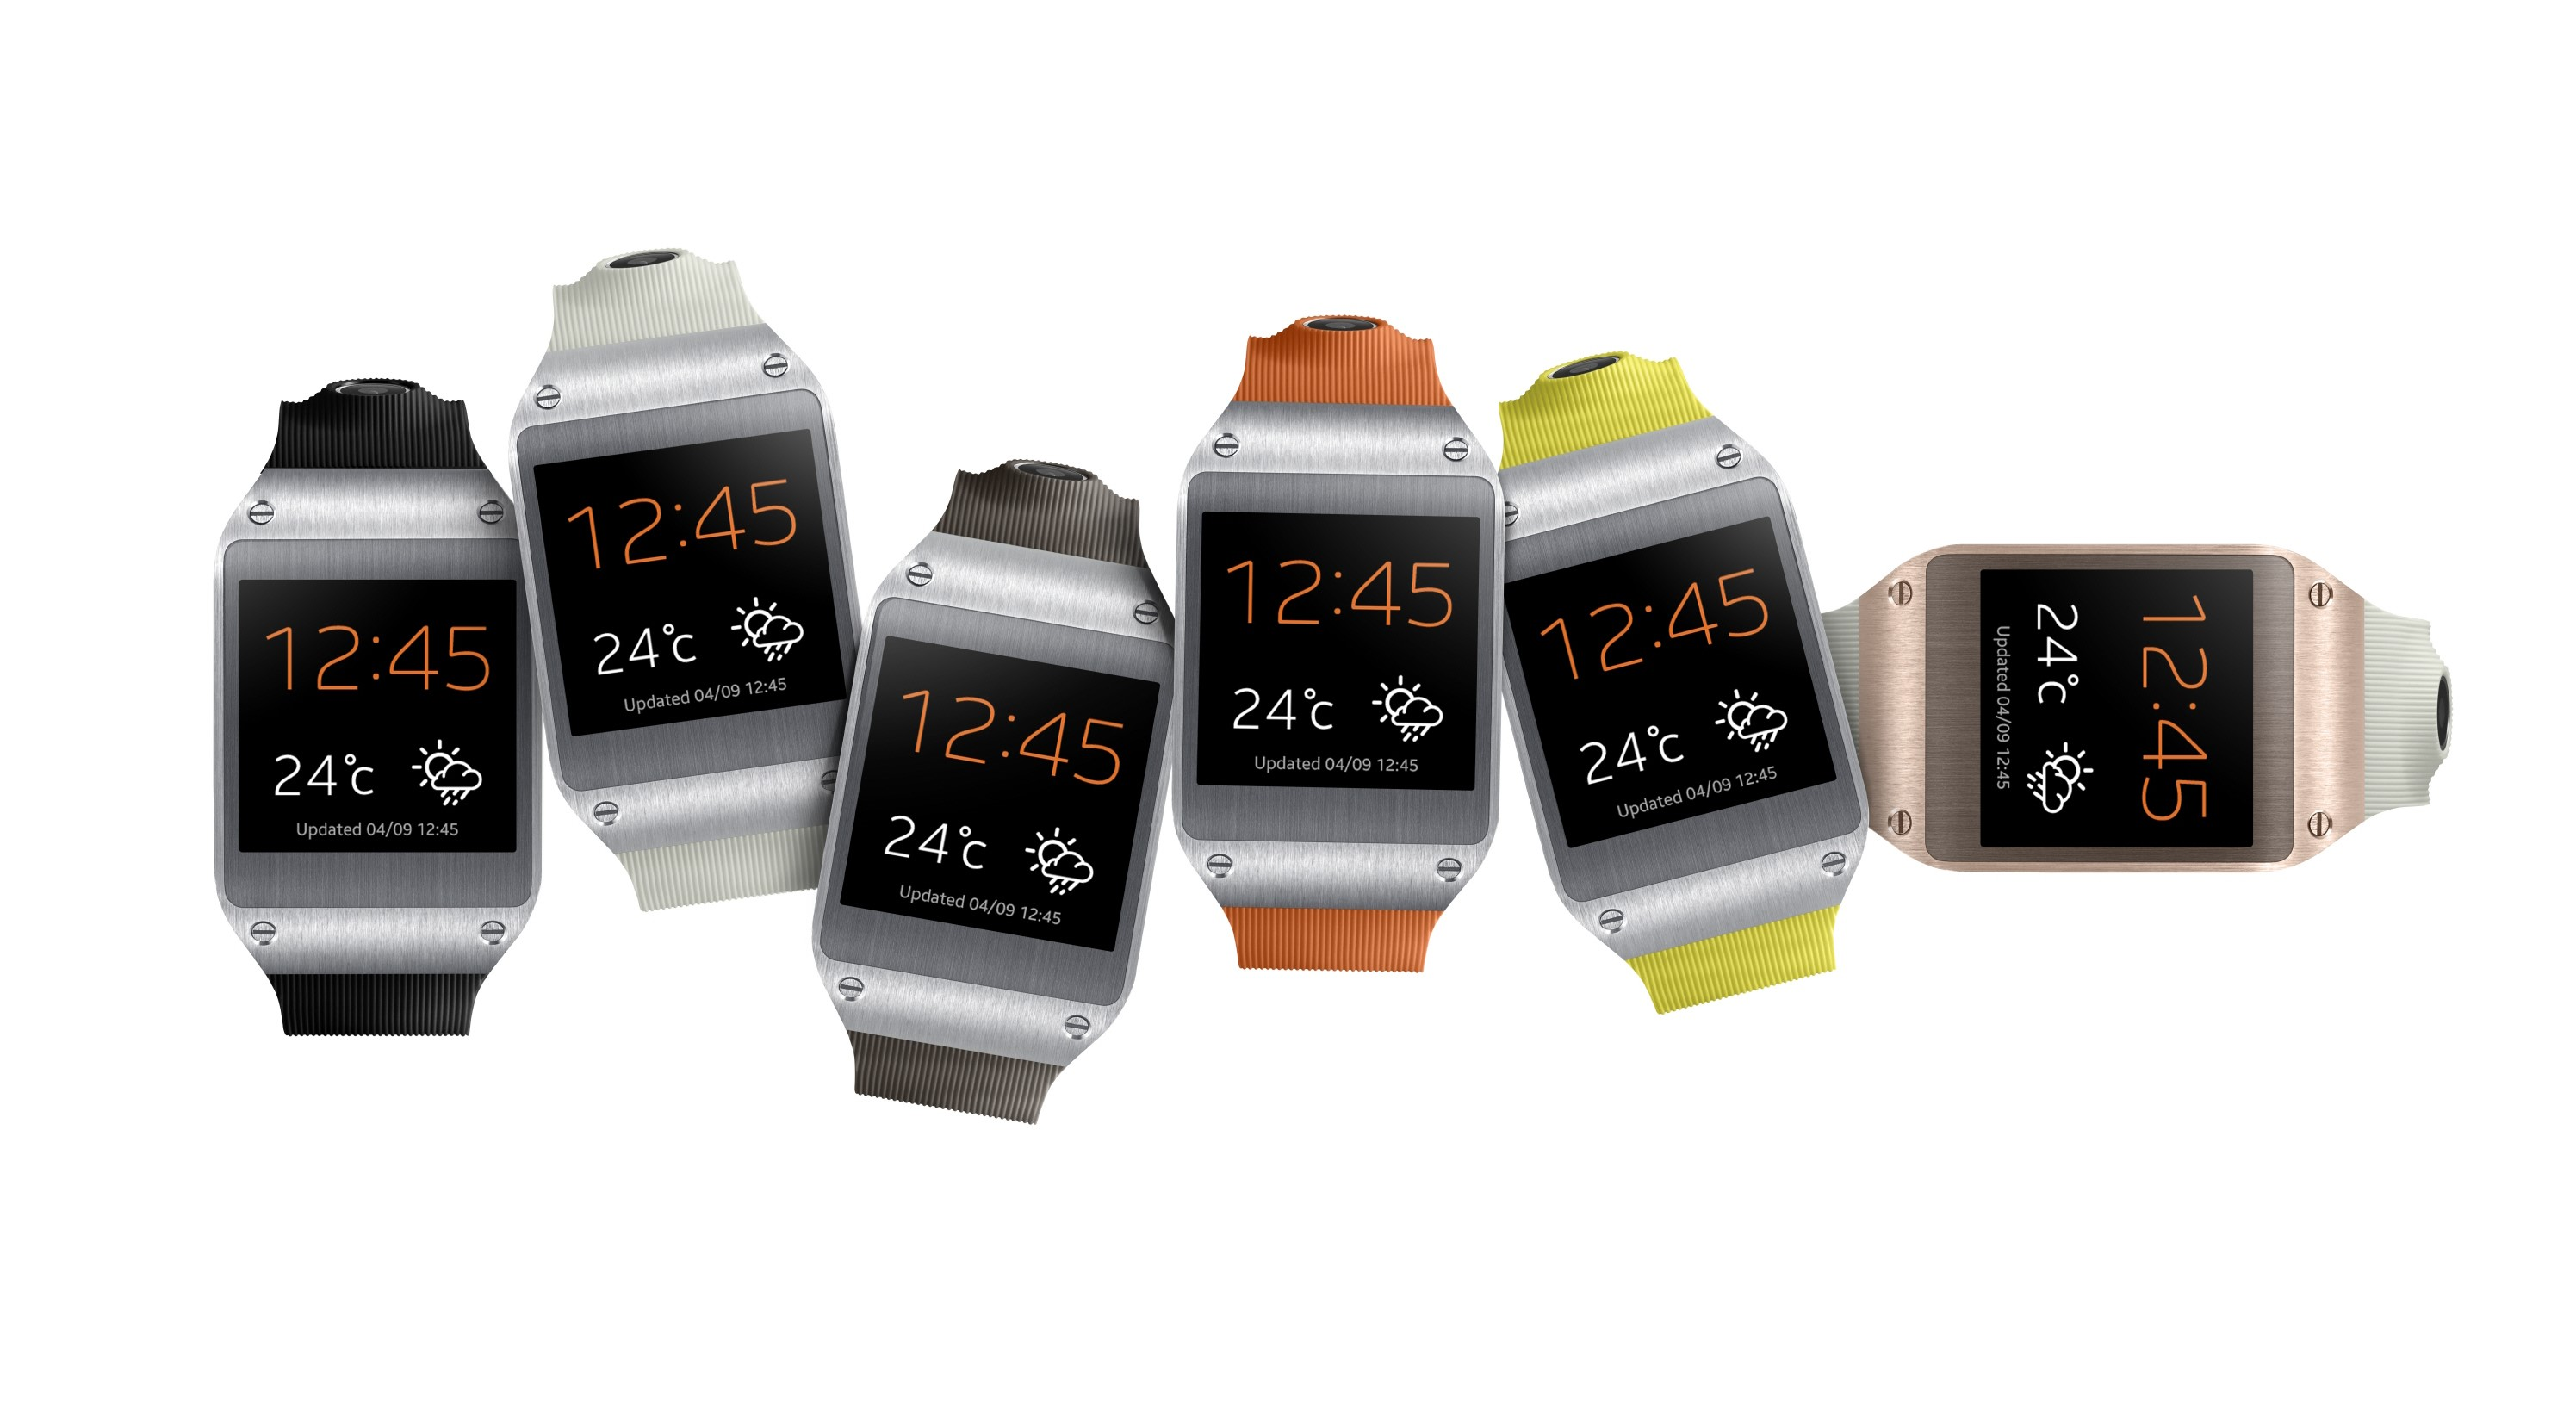 the samsung galaxy gear smart watch   crooked manners